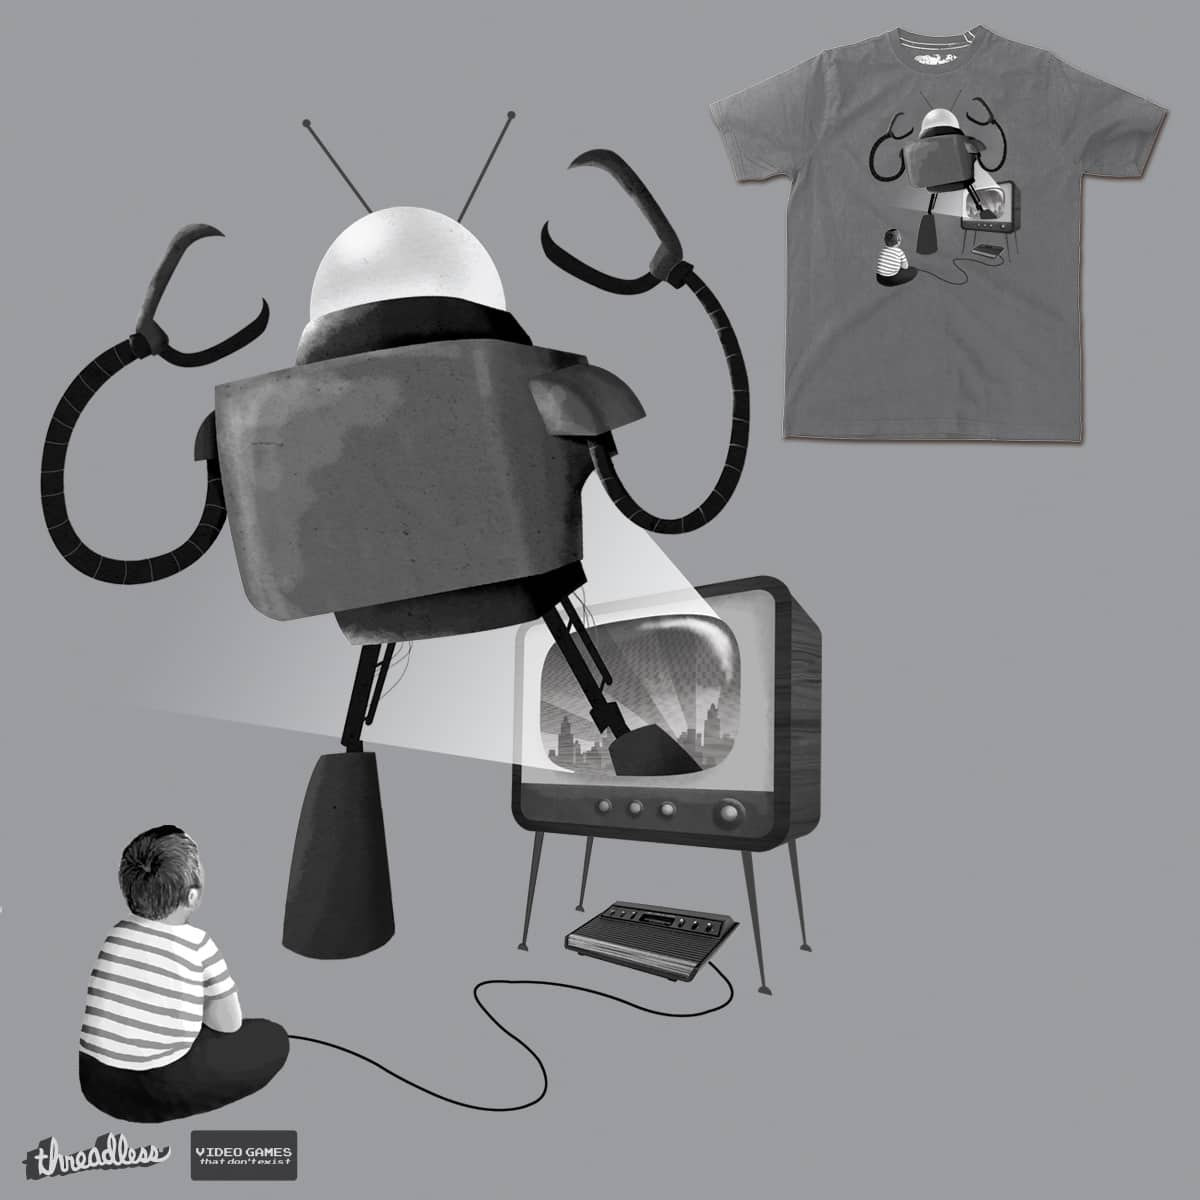 Check Out Those Graphics by DinoMike on Threadless